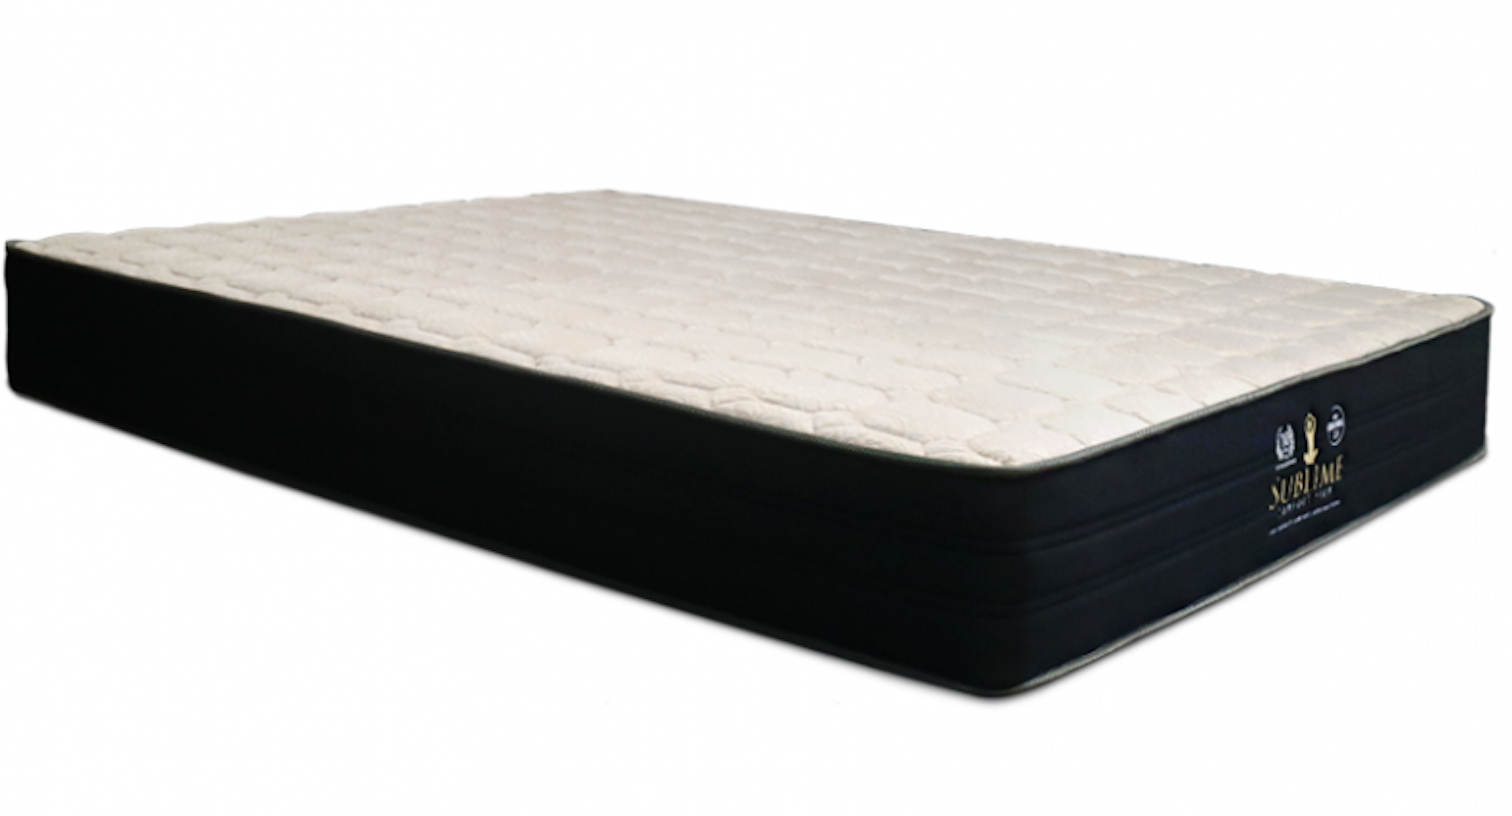 bedworks-sublime-comfort-firm-extra-firm-mattress